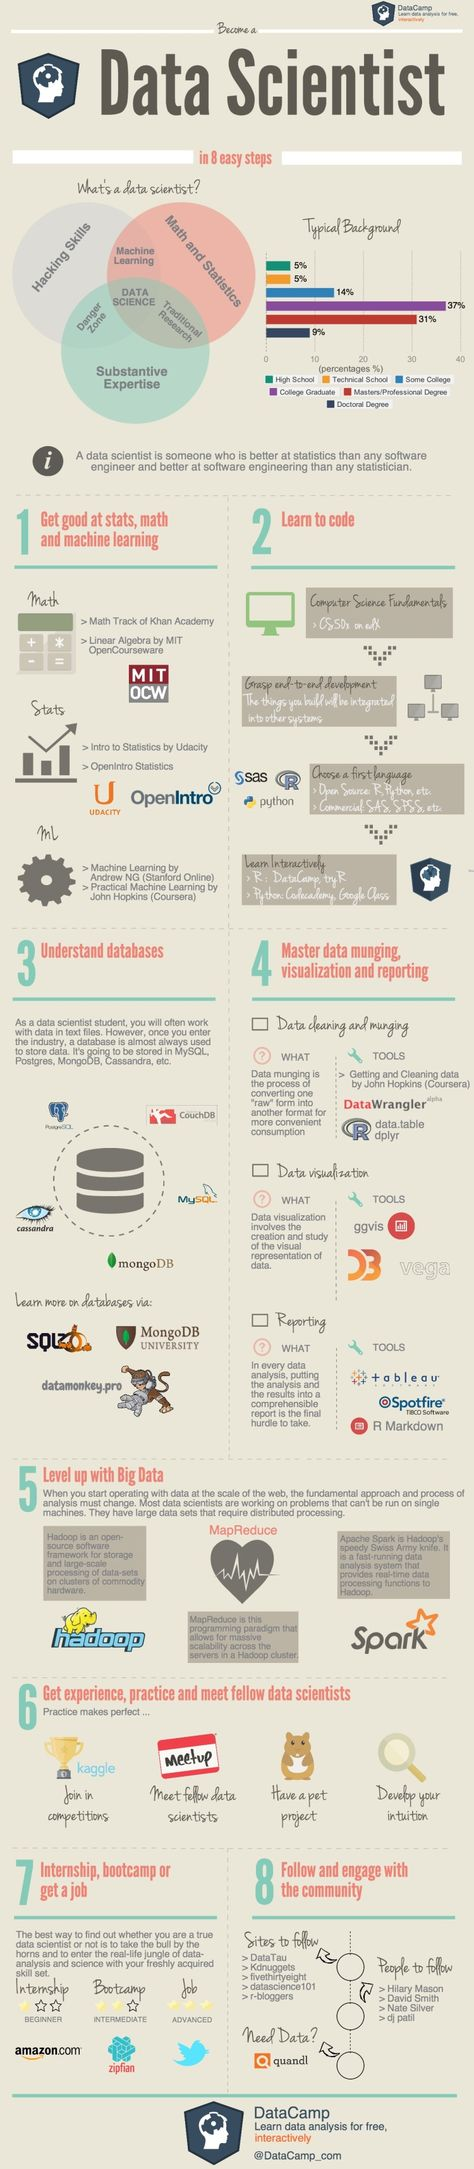 77 best big data and business intelligence images on pinterest big 77 best big data and business intelligence images on pinterest big data business intelligence and data science fandeluxe Images